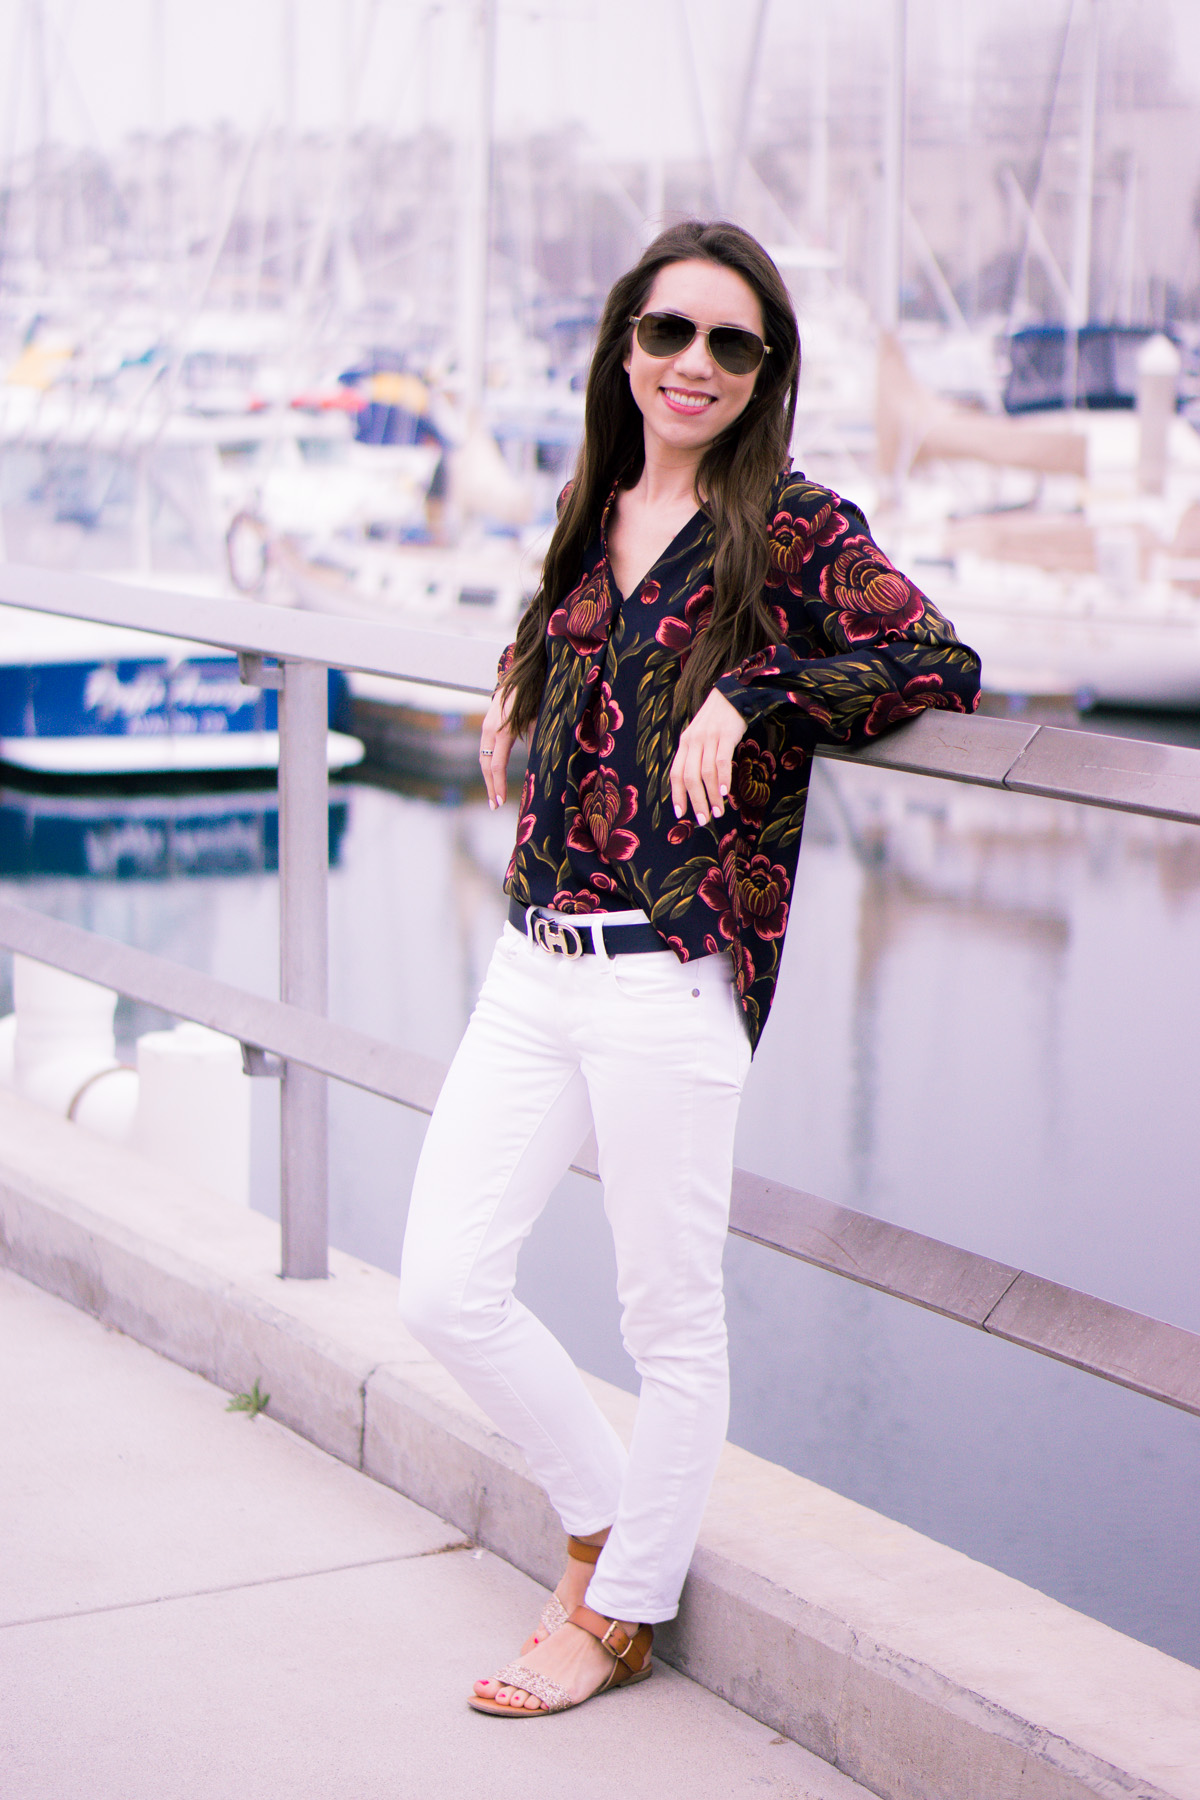 3 ways to wear spring florals: corporate, date night, weekend